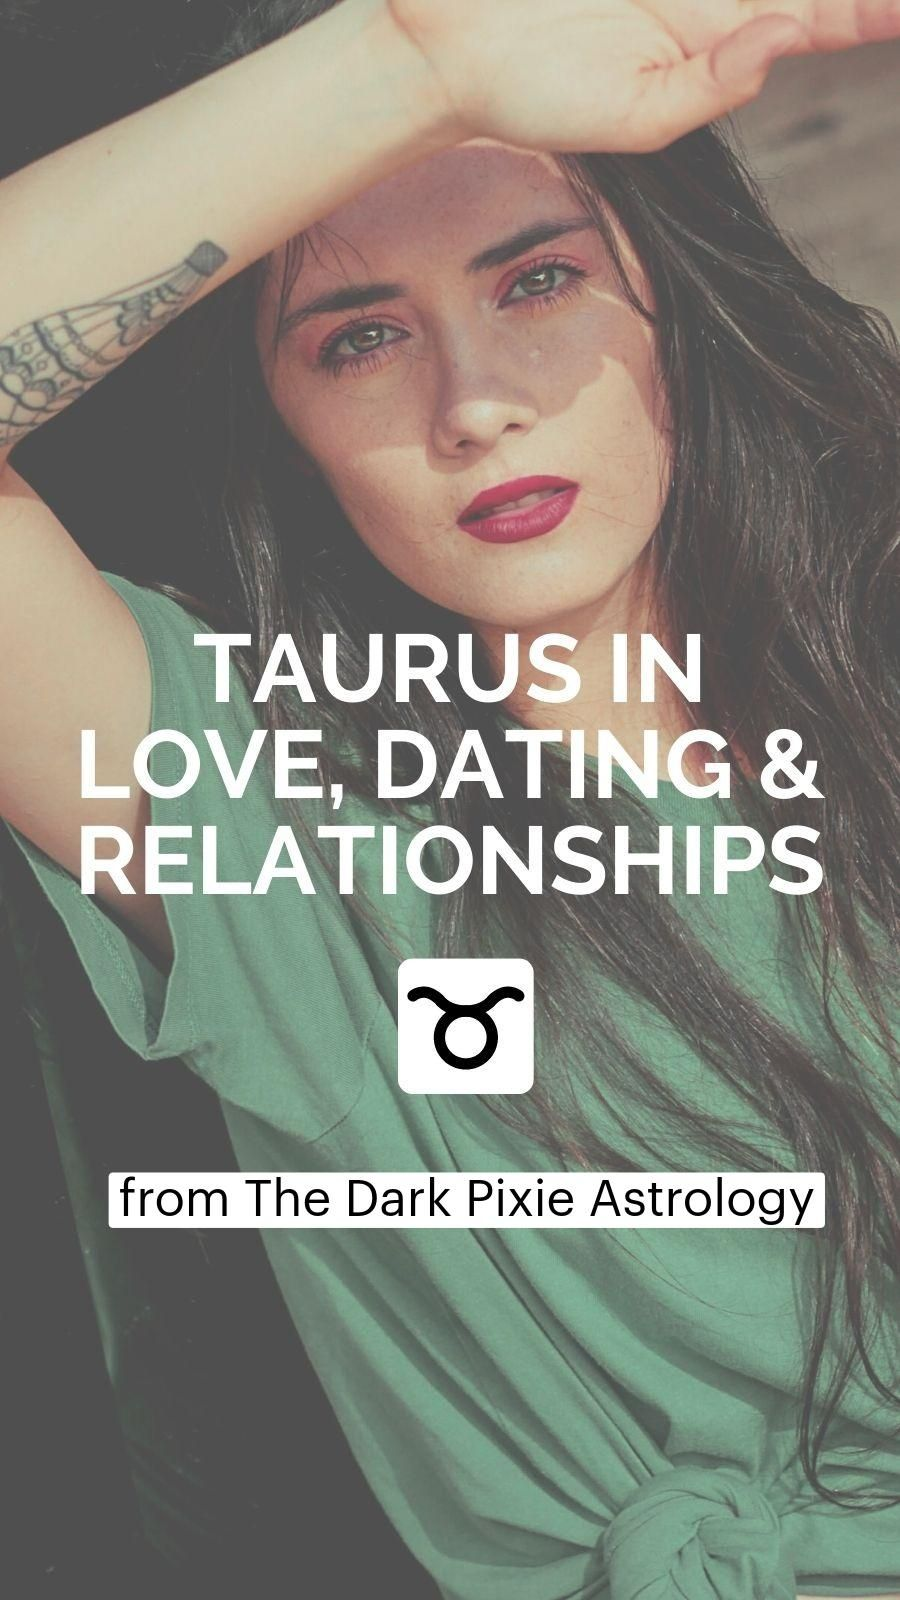 Taurus in Love, Dating & Relationships - Astrology